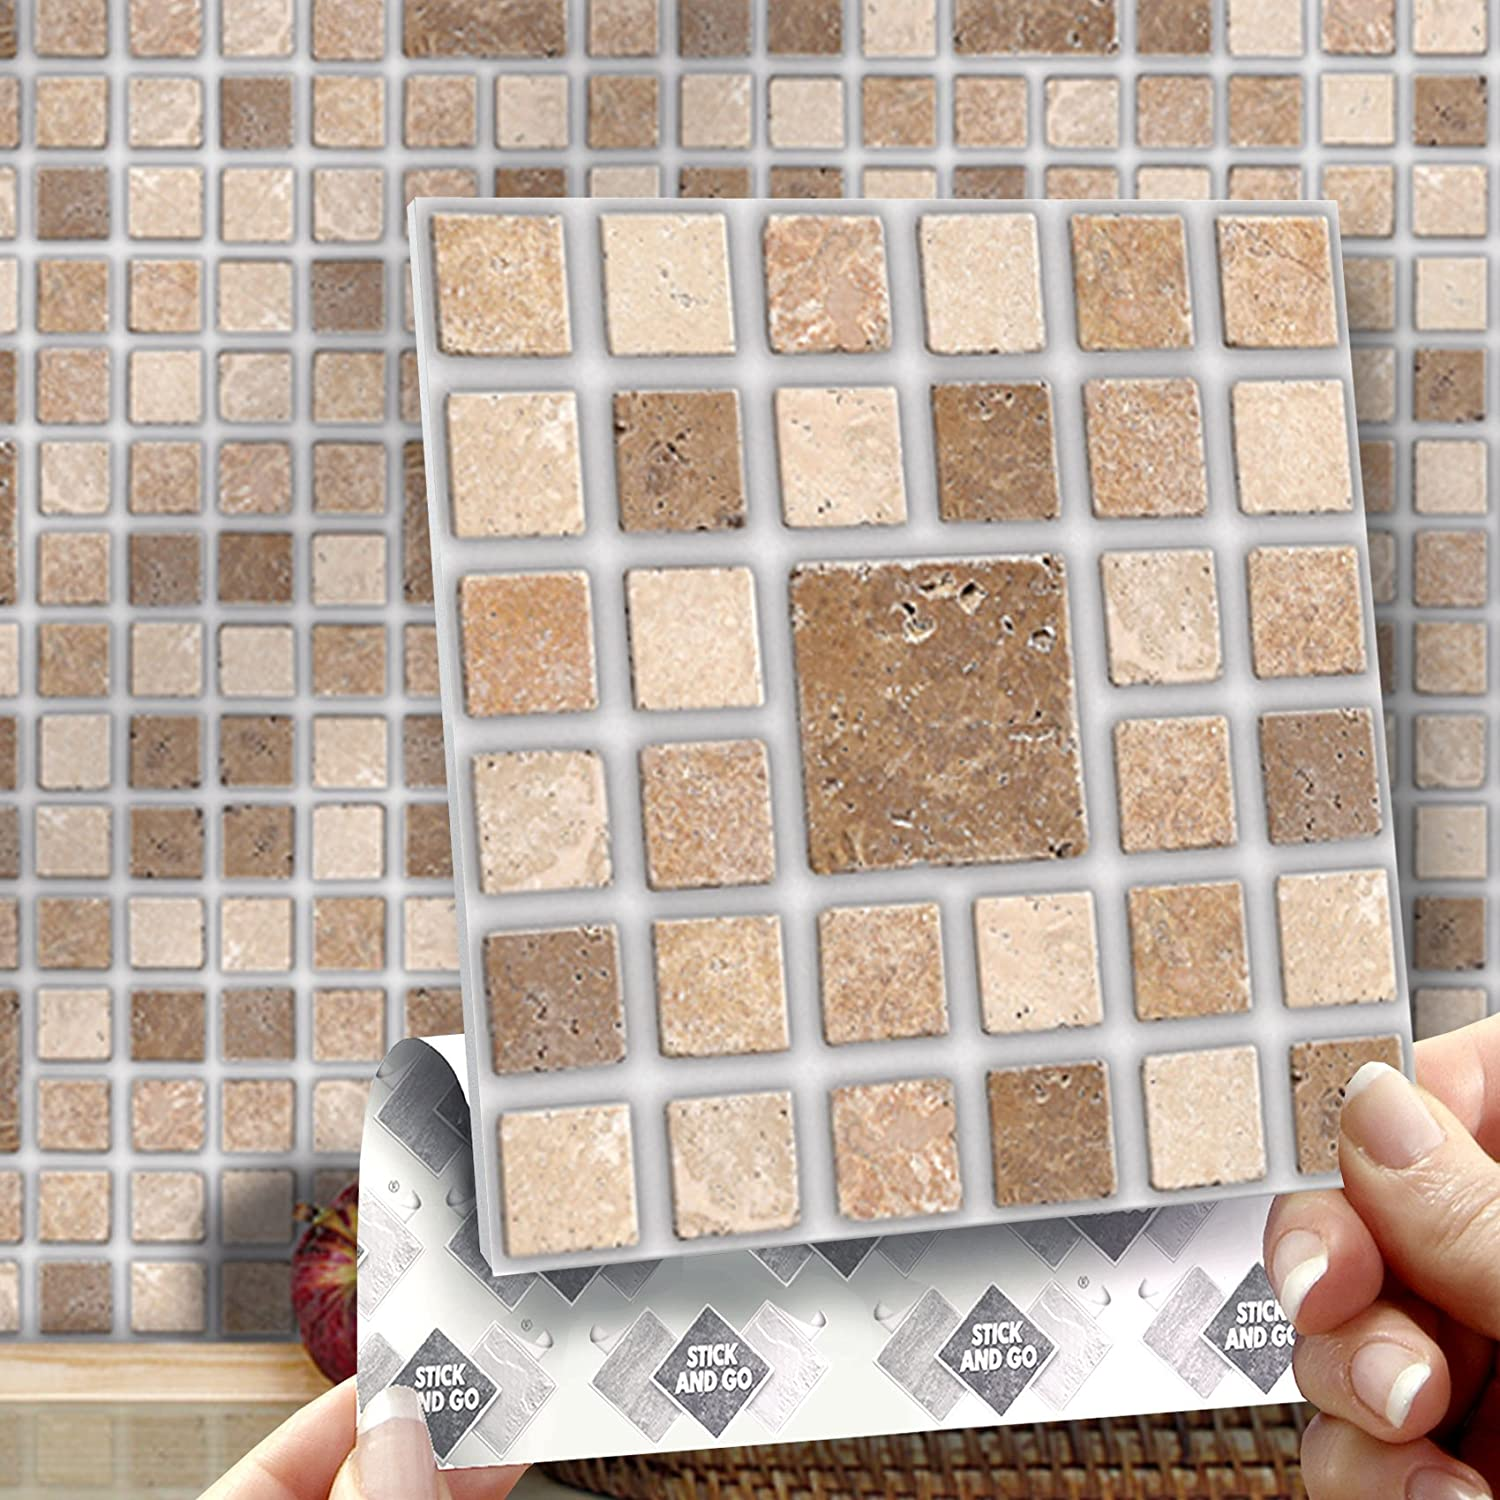 ROMAN MOSAIC EFFECT WALL TILES: Box of 8 tiles Stick and Go Wall ...